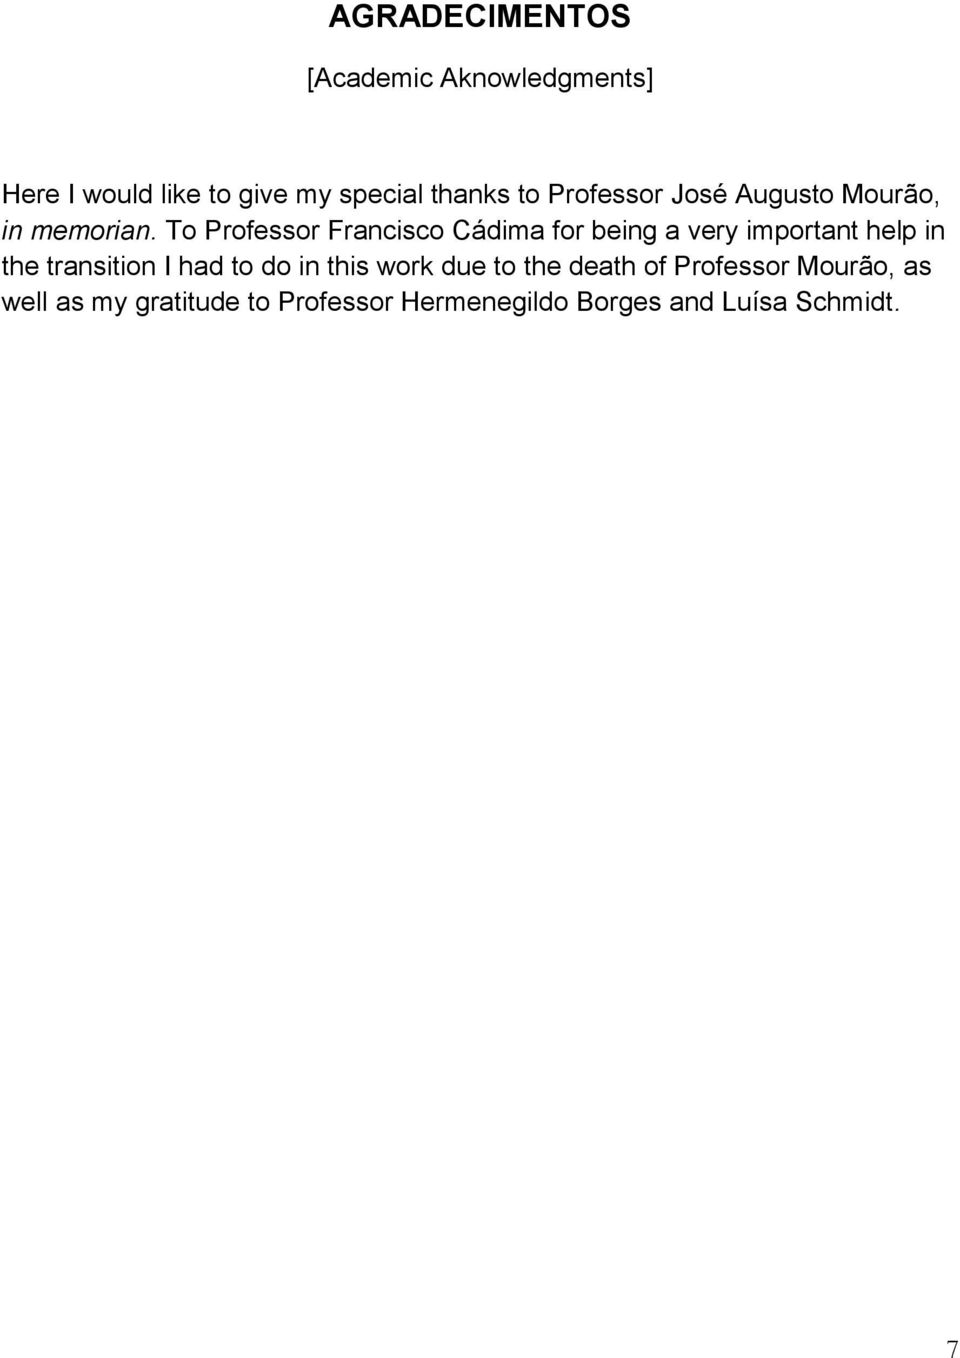 To Professor Francisco Cádima for being a very important help in the transition I had